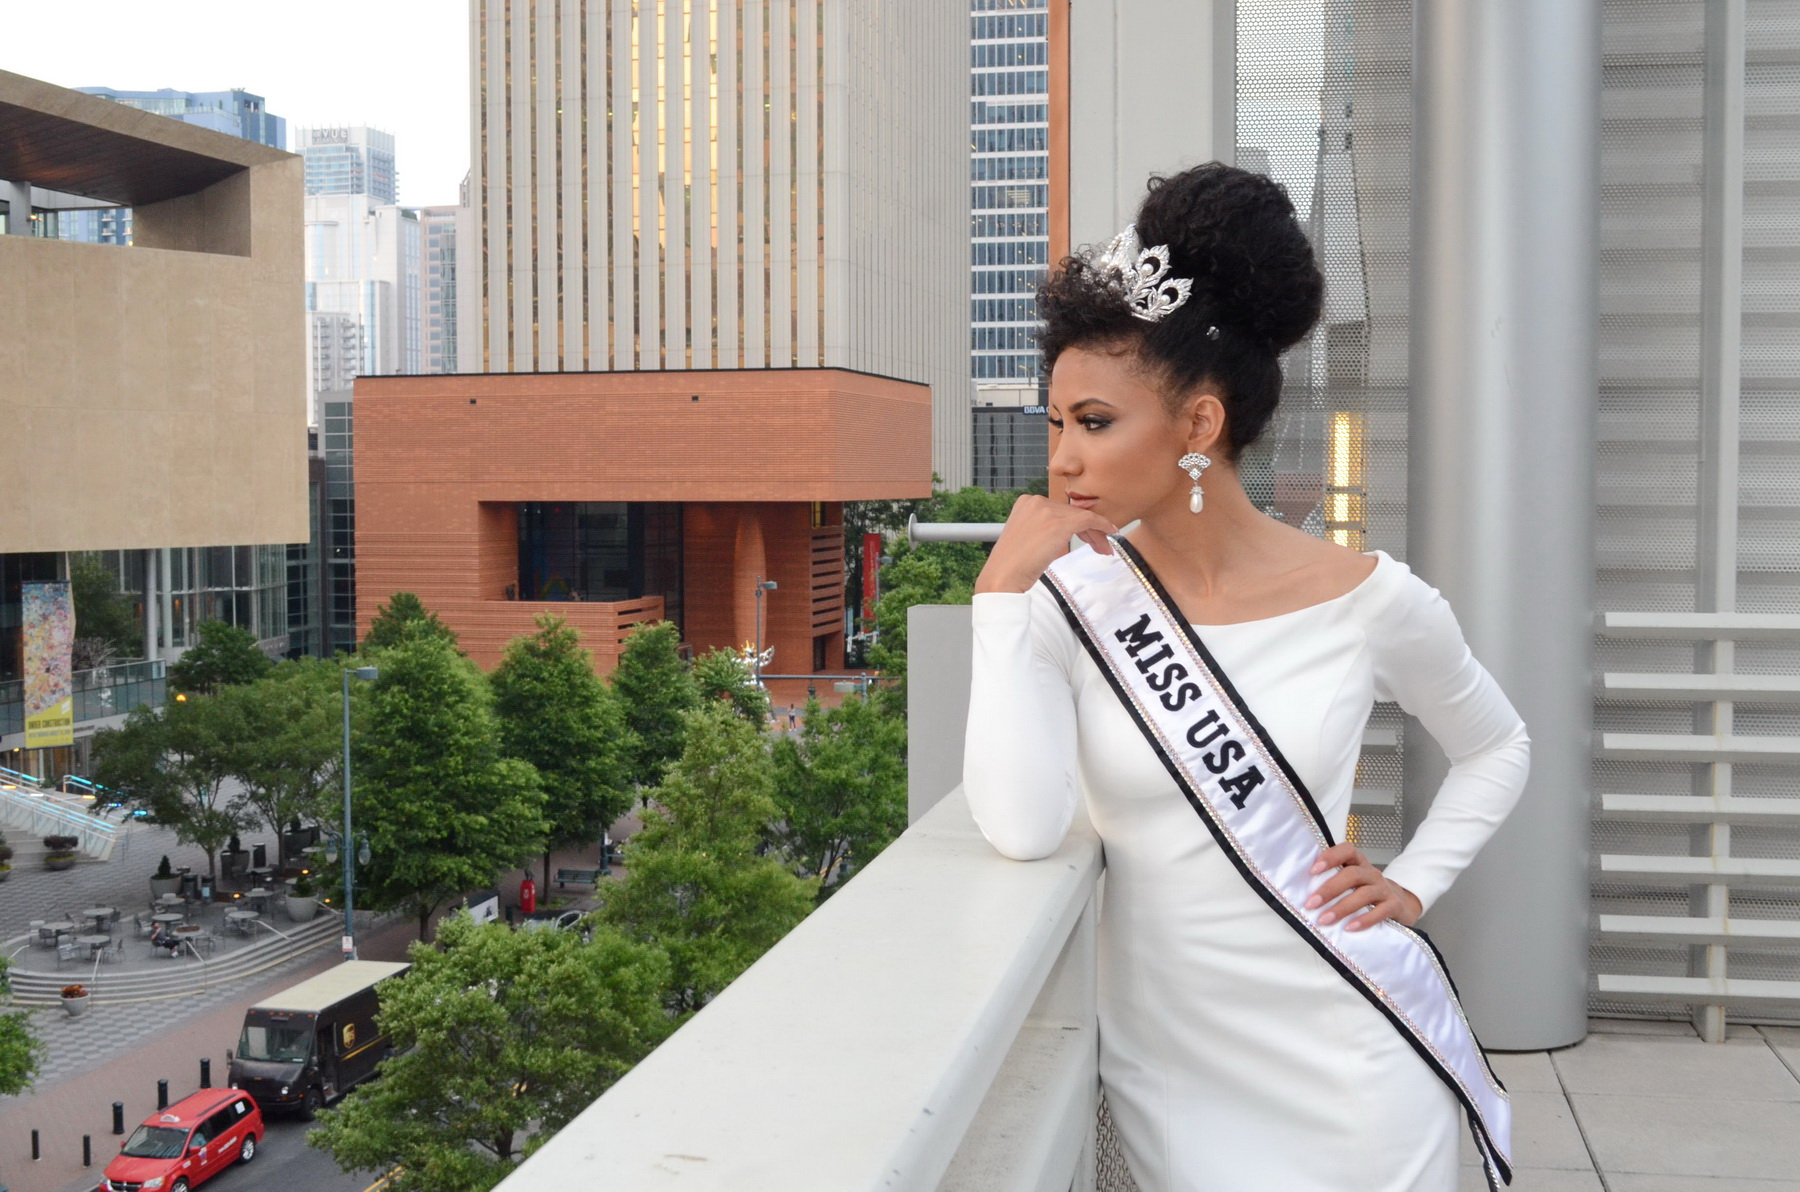 Miss USA Cheslie Kryst, a Charlotte attorney and the reigning Miss North Carolina USA, was celebrated by her family and friends at a private event at the Harvey B. Gantt Center for African-American Arts + Culture.  Cheslie also volunteers as a member of the Gantt Center's Millennial Advisory Board.